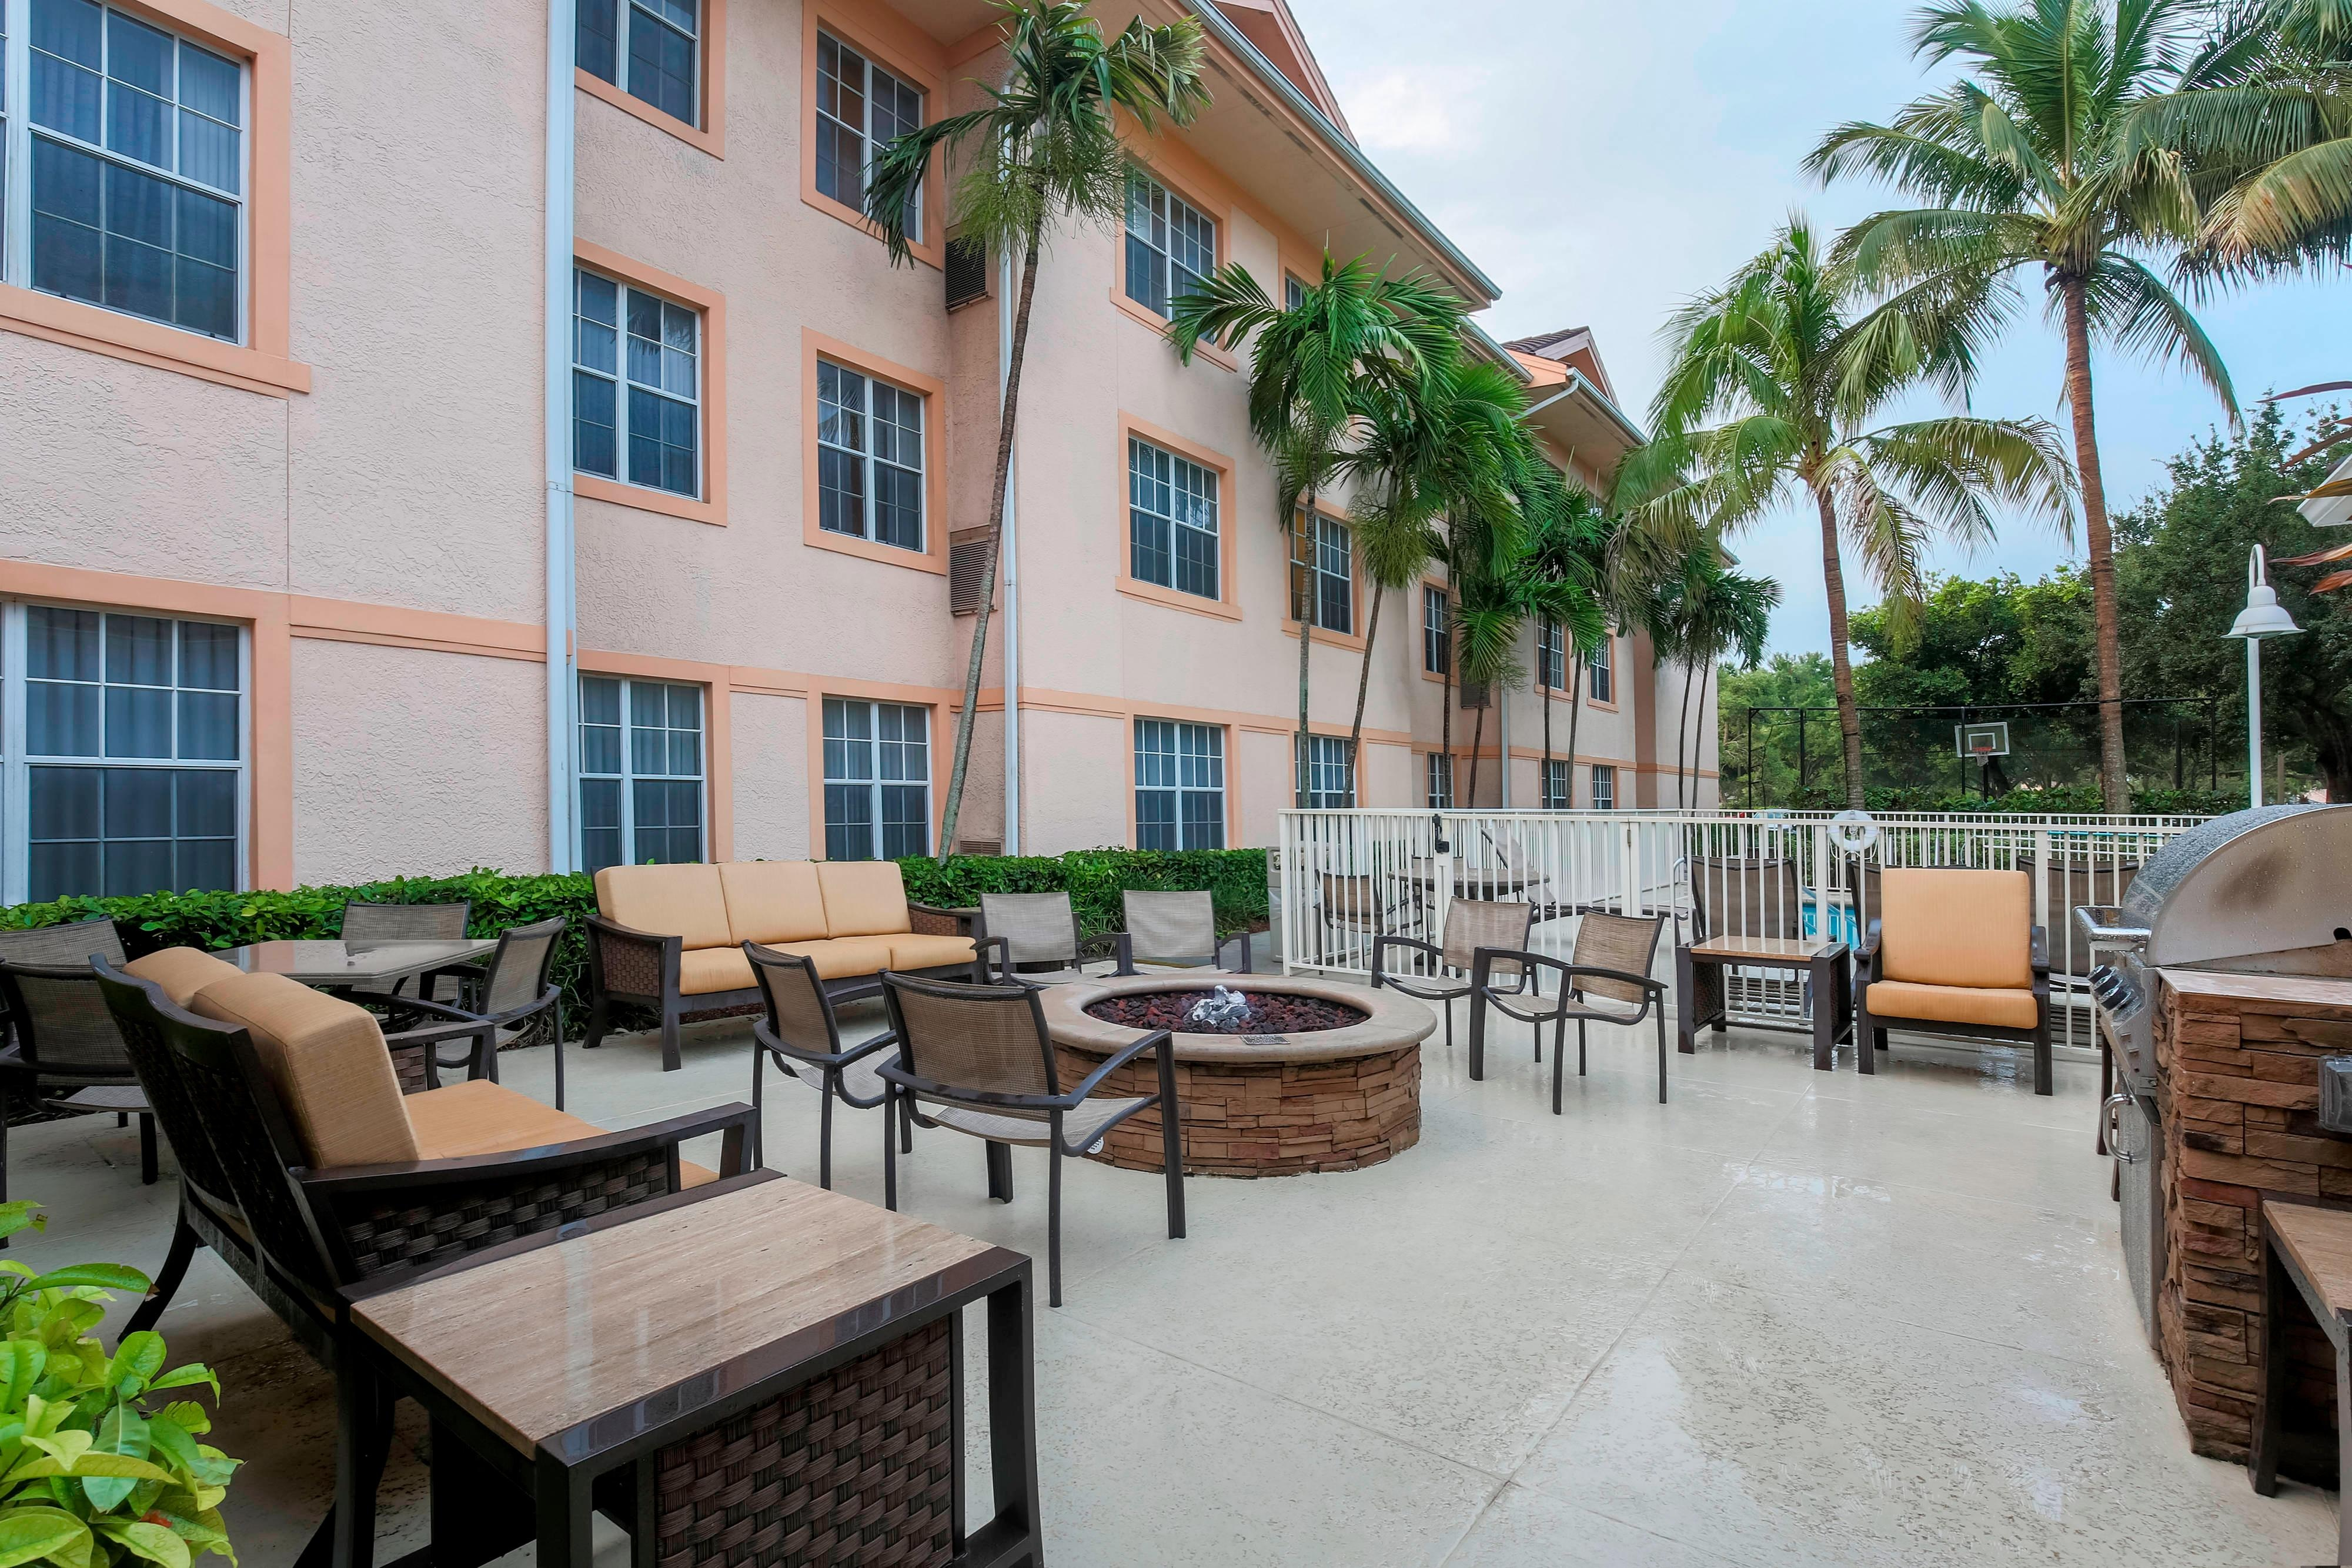 West Palm Beach Outdoor Patio